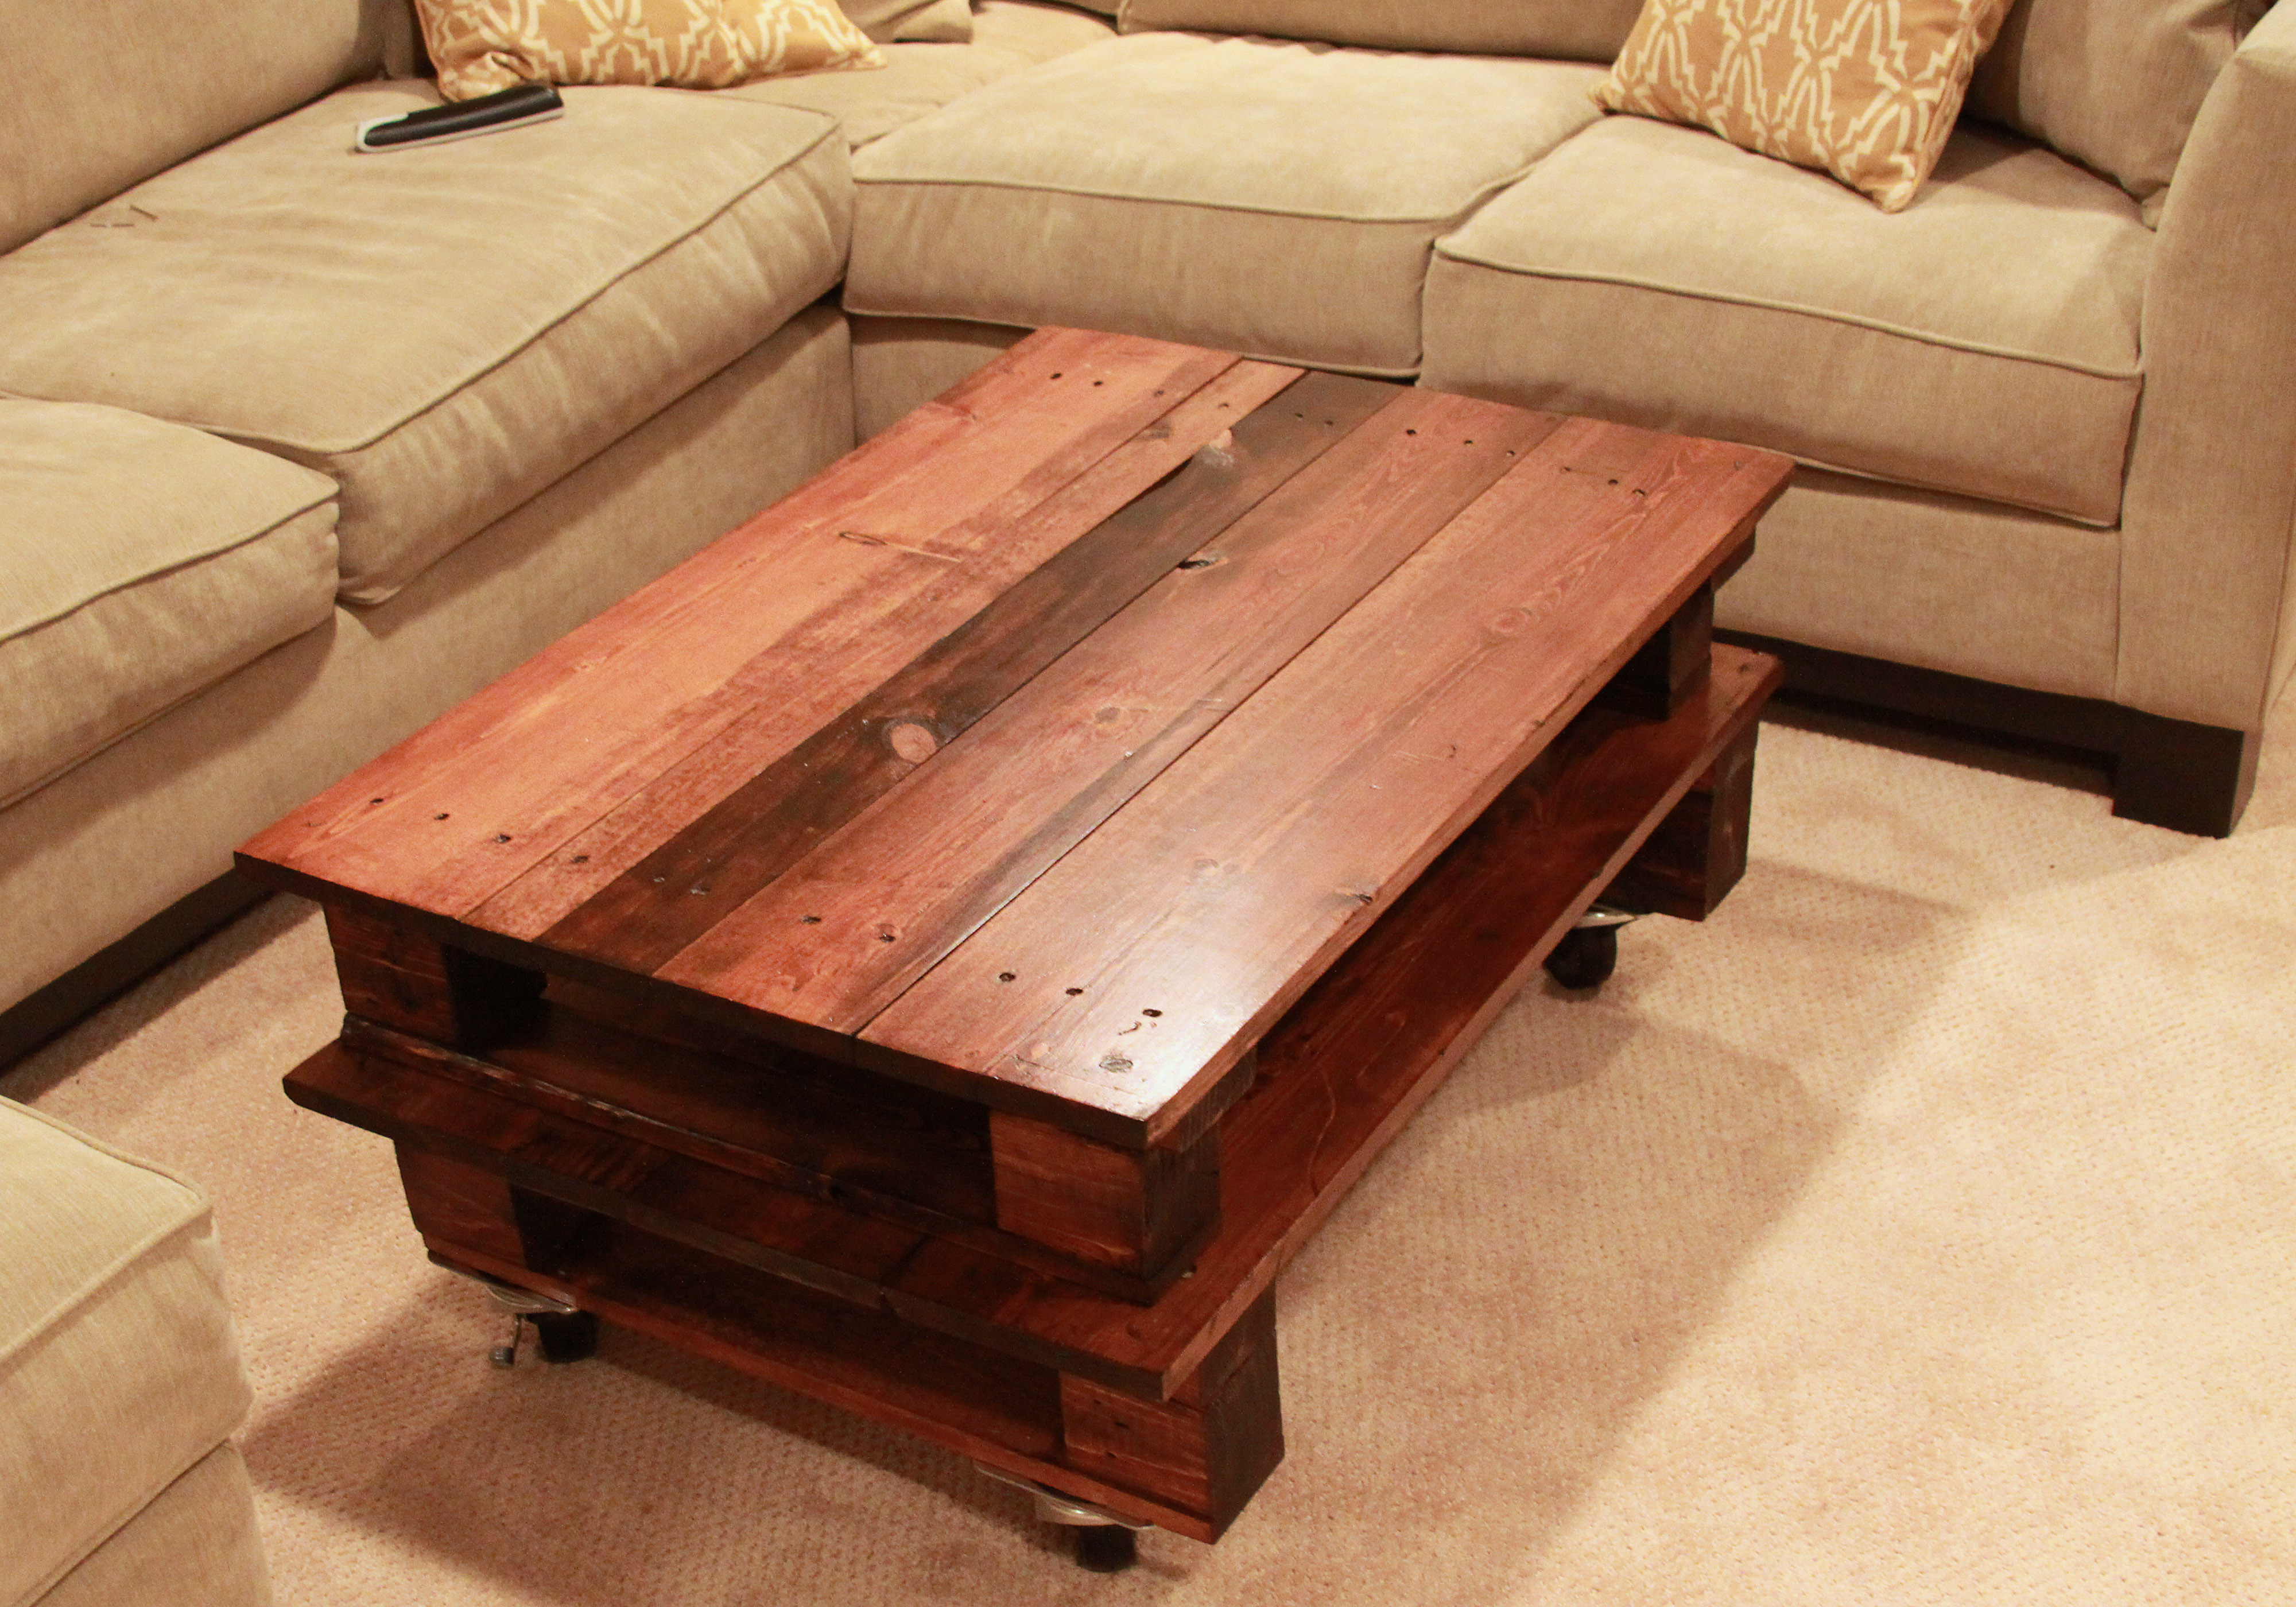 Best ideas about DIY Pallet Coffee Table . Save or Pin DIY Pallet Coffee Table Espresso and CreamEspresso and Cream Now.